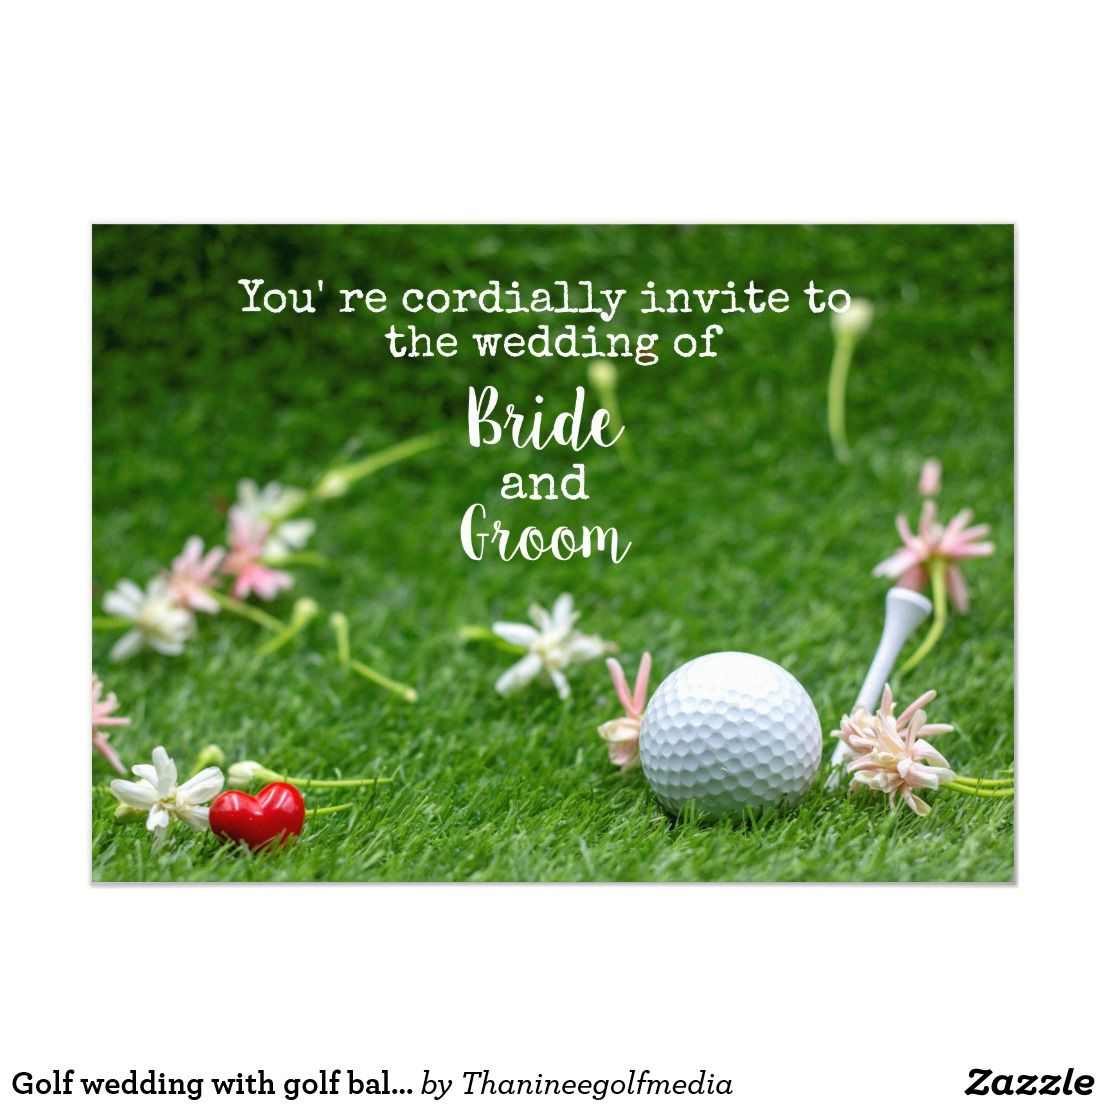 Golf wedding with golf ball and one heart on green